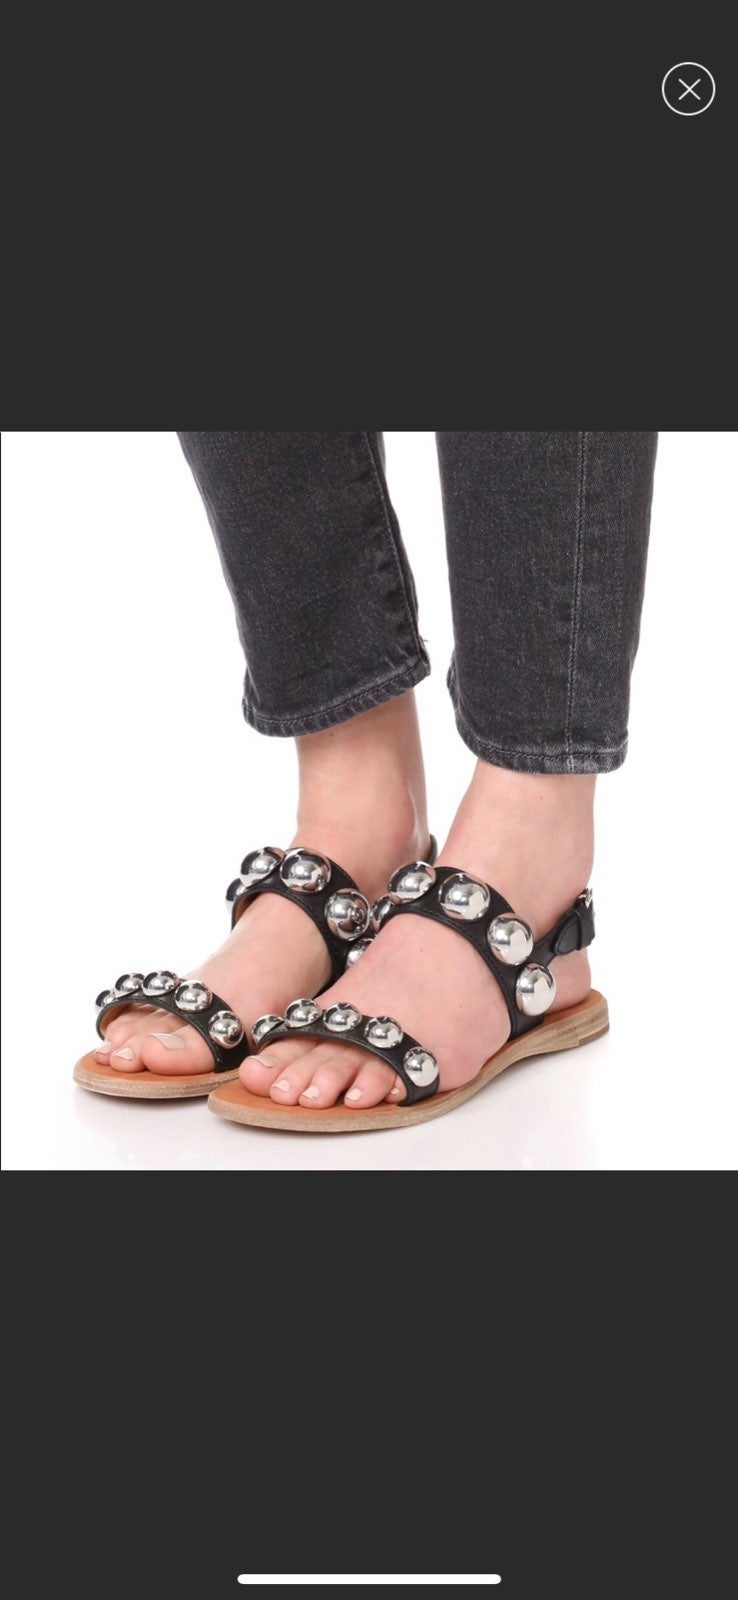 Brand New Marc Jacobs Sandals Retail$325